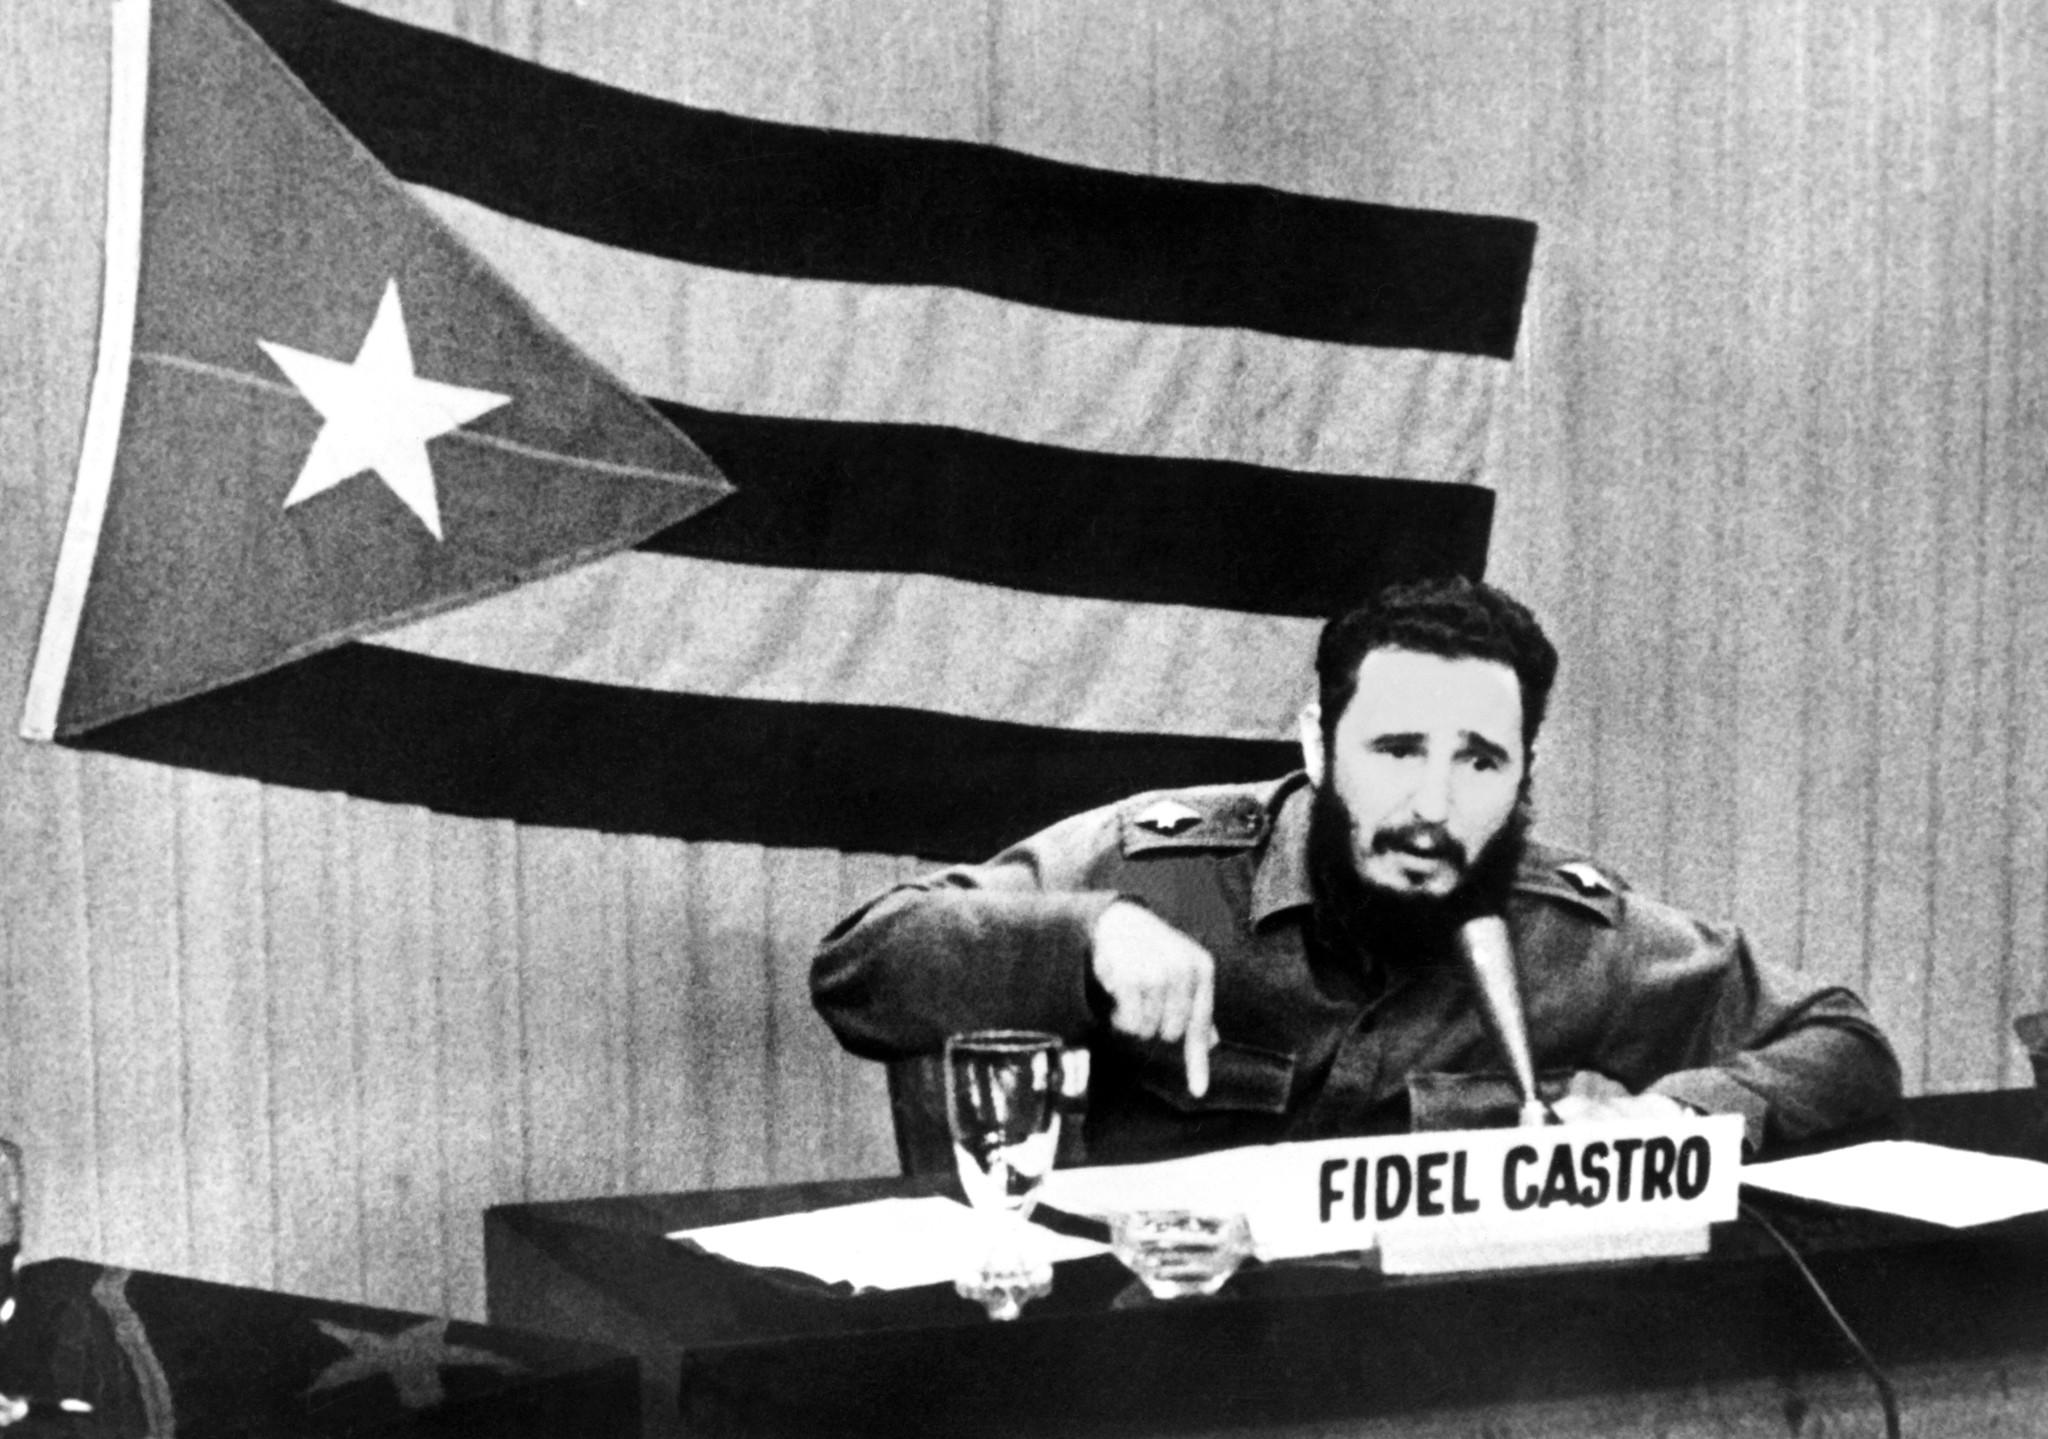 (FILES): This circa October 22, 1962 file photo shows Cuban President Fidel Castro giving a speech during the Cold War Cuban Missile Crisis. Fifty years after the Cuban missile crisis, Havana remains virulently hostile to the United States, which reciprocates by maintaining a crippling economic embargo against the communist-ruled Caribbean island. AFP PHOTO / FILES-/AFP/GettyImages ORG XMIT: